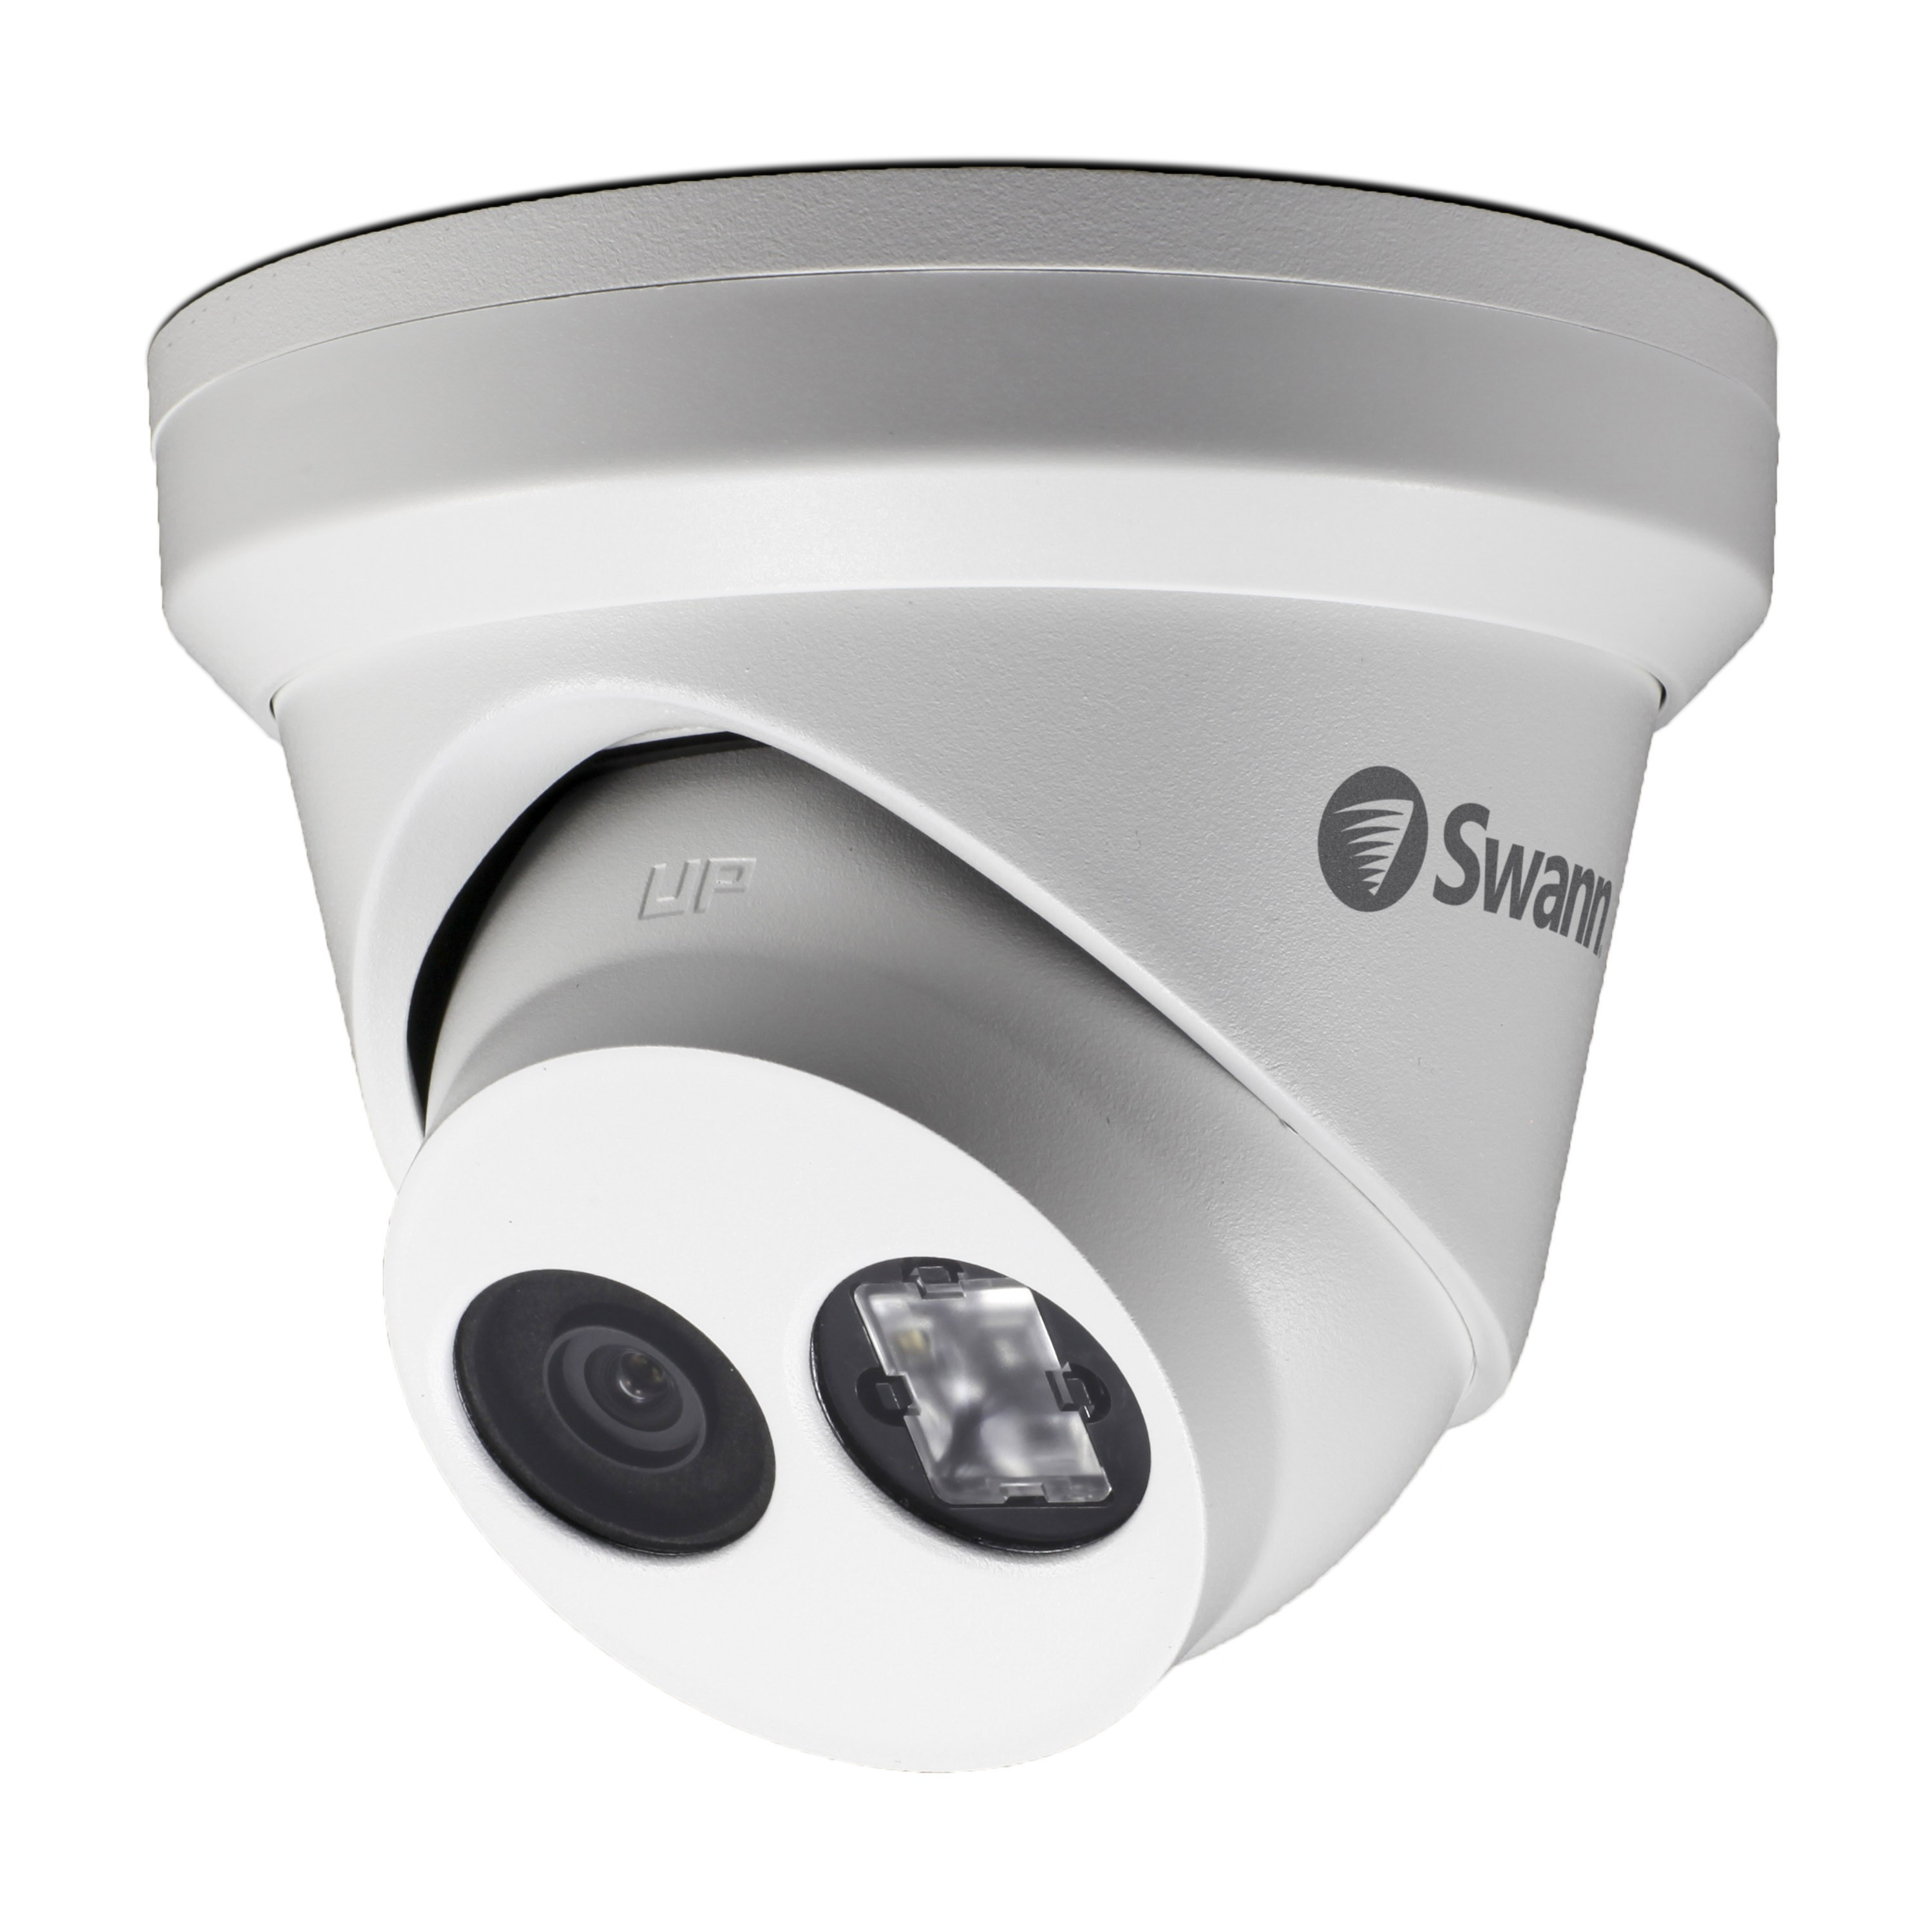 Swann Security Cameras | Buy Online Today at Swann.com/us/ USA